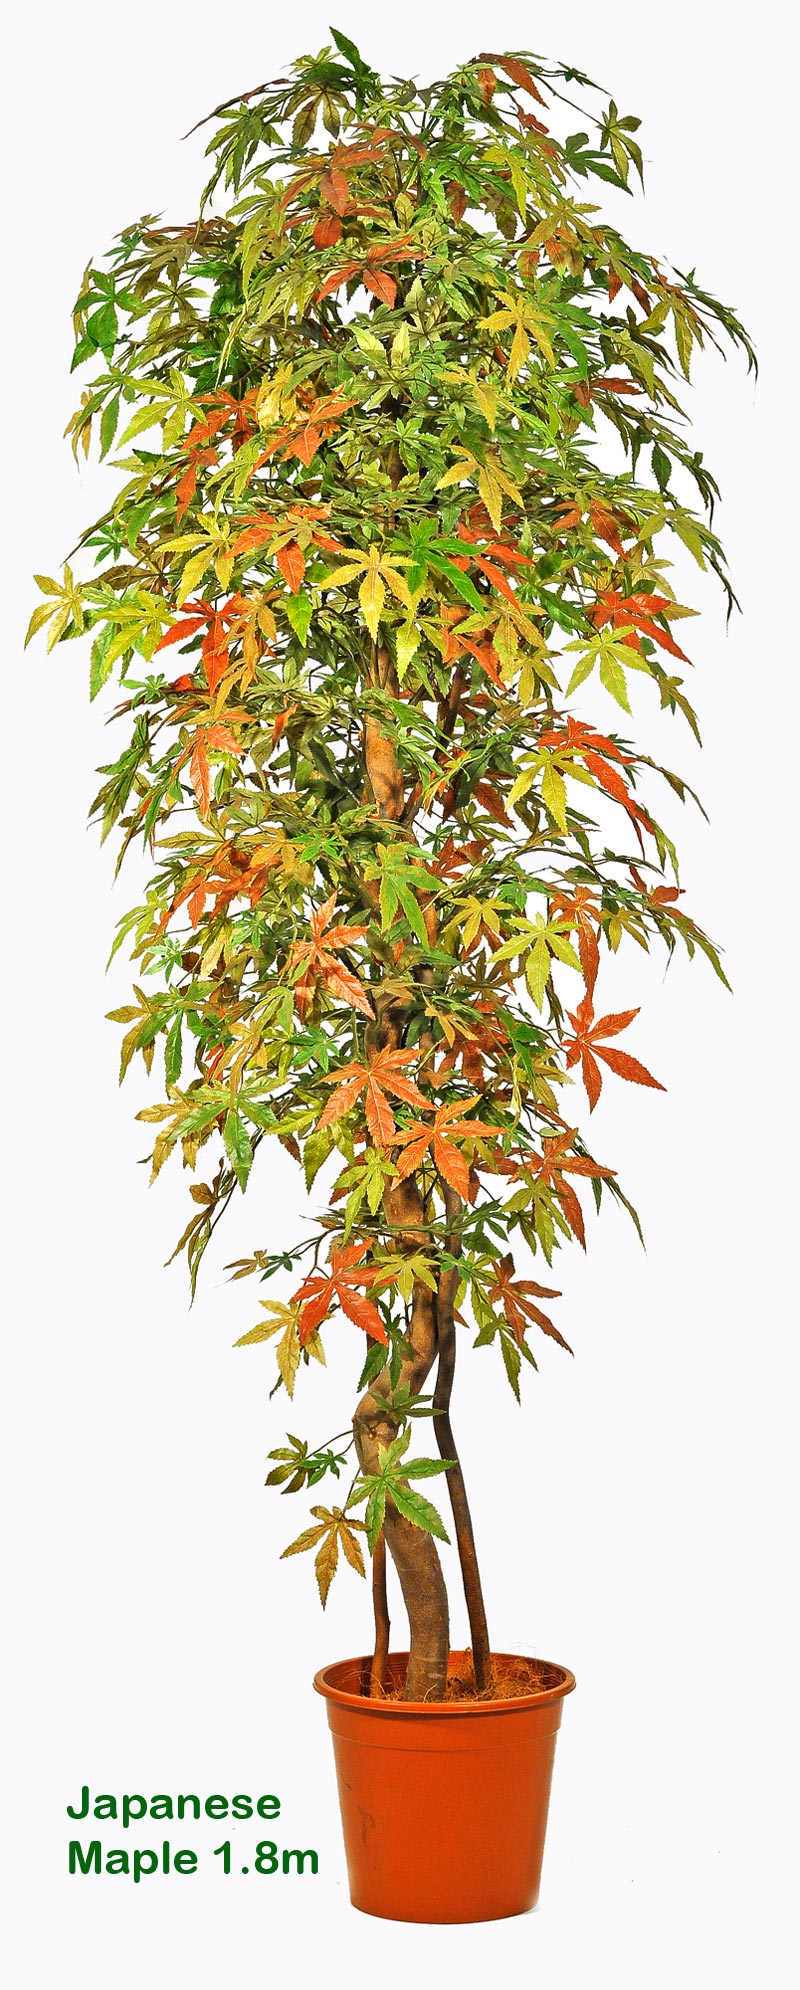 Articial Plants - Japanese Maple Trees 1.5m